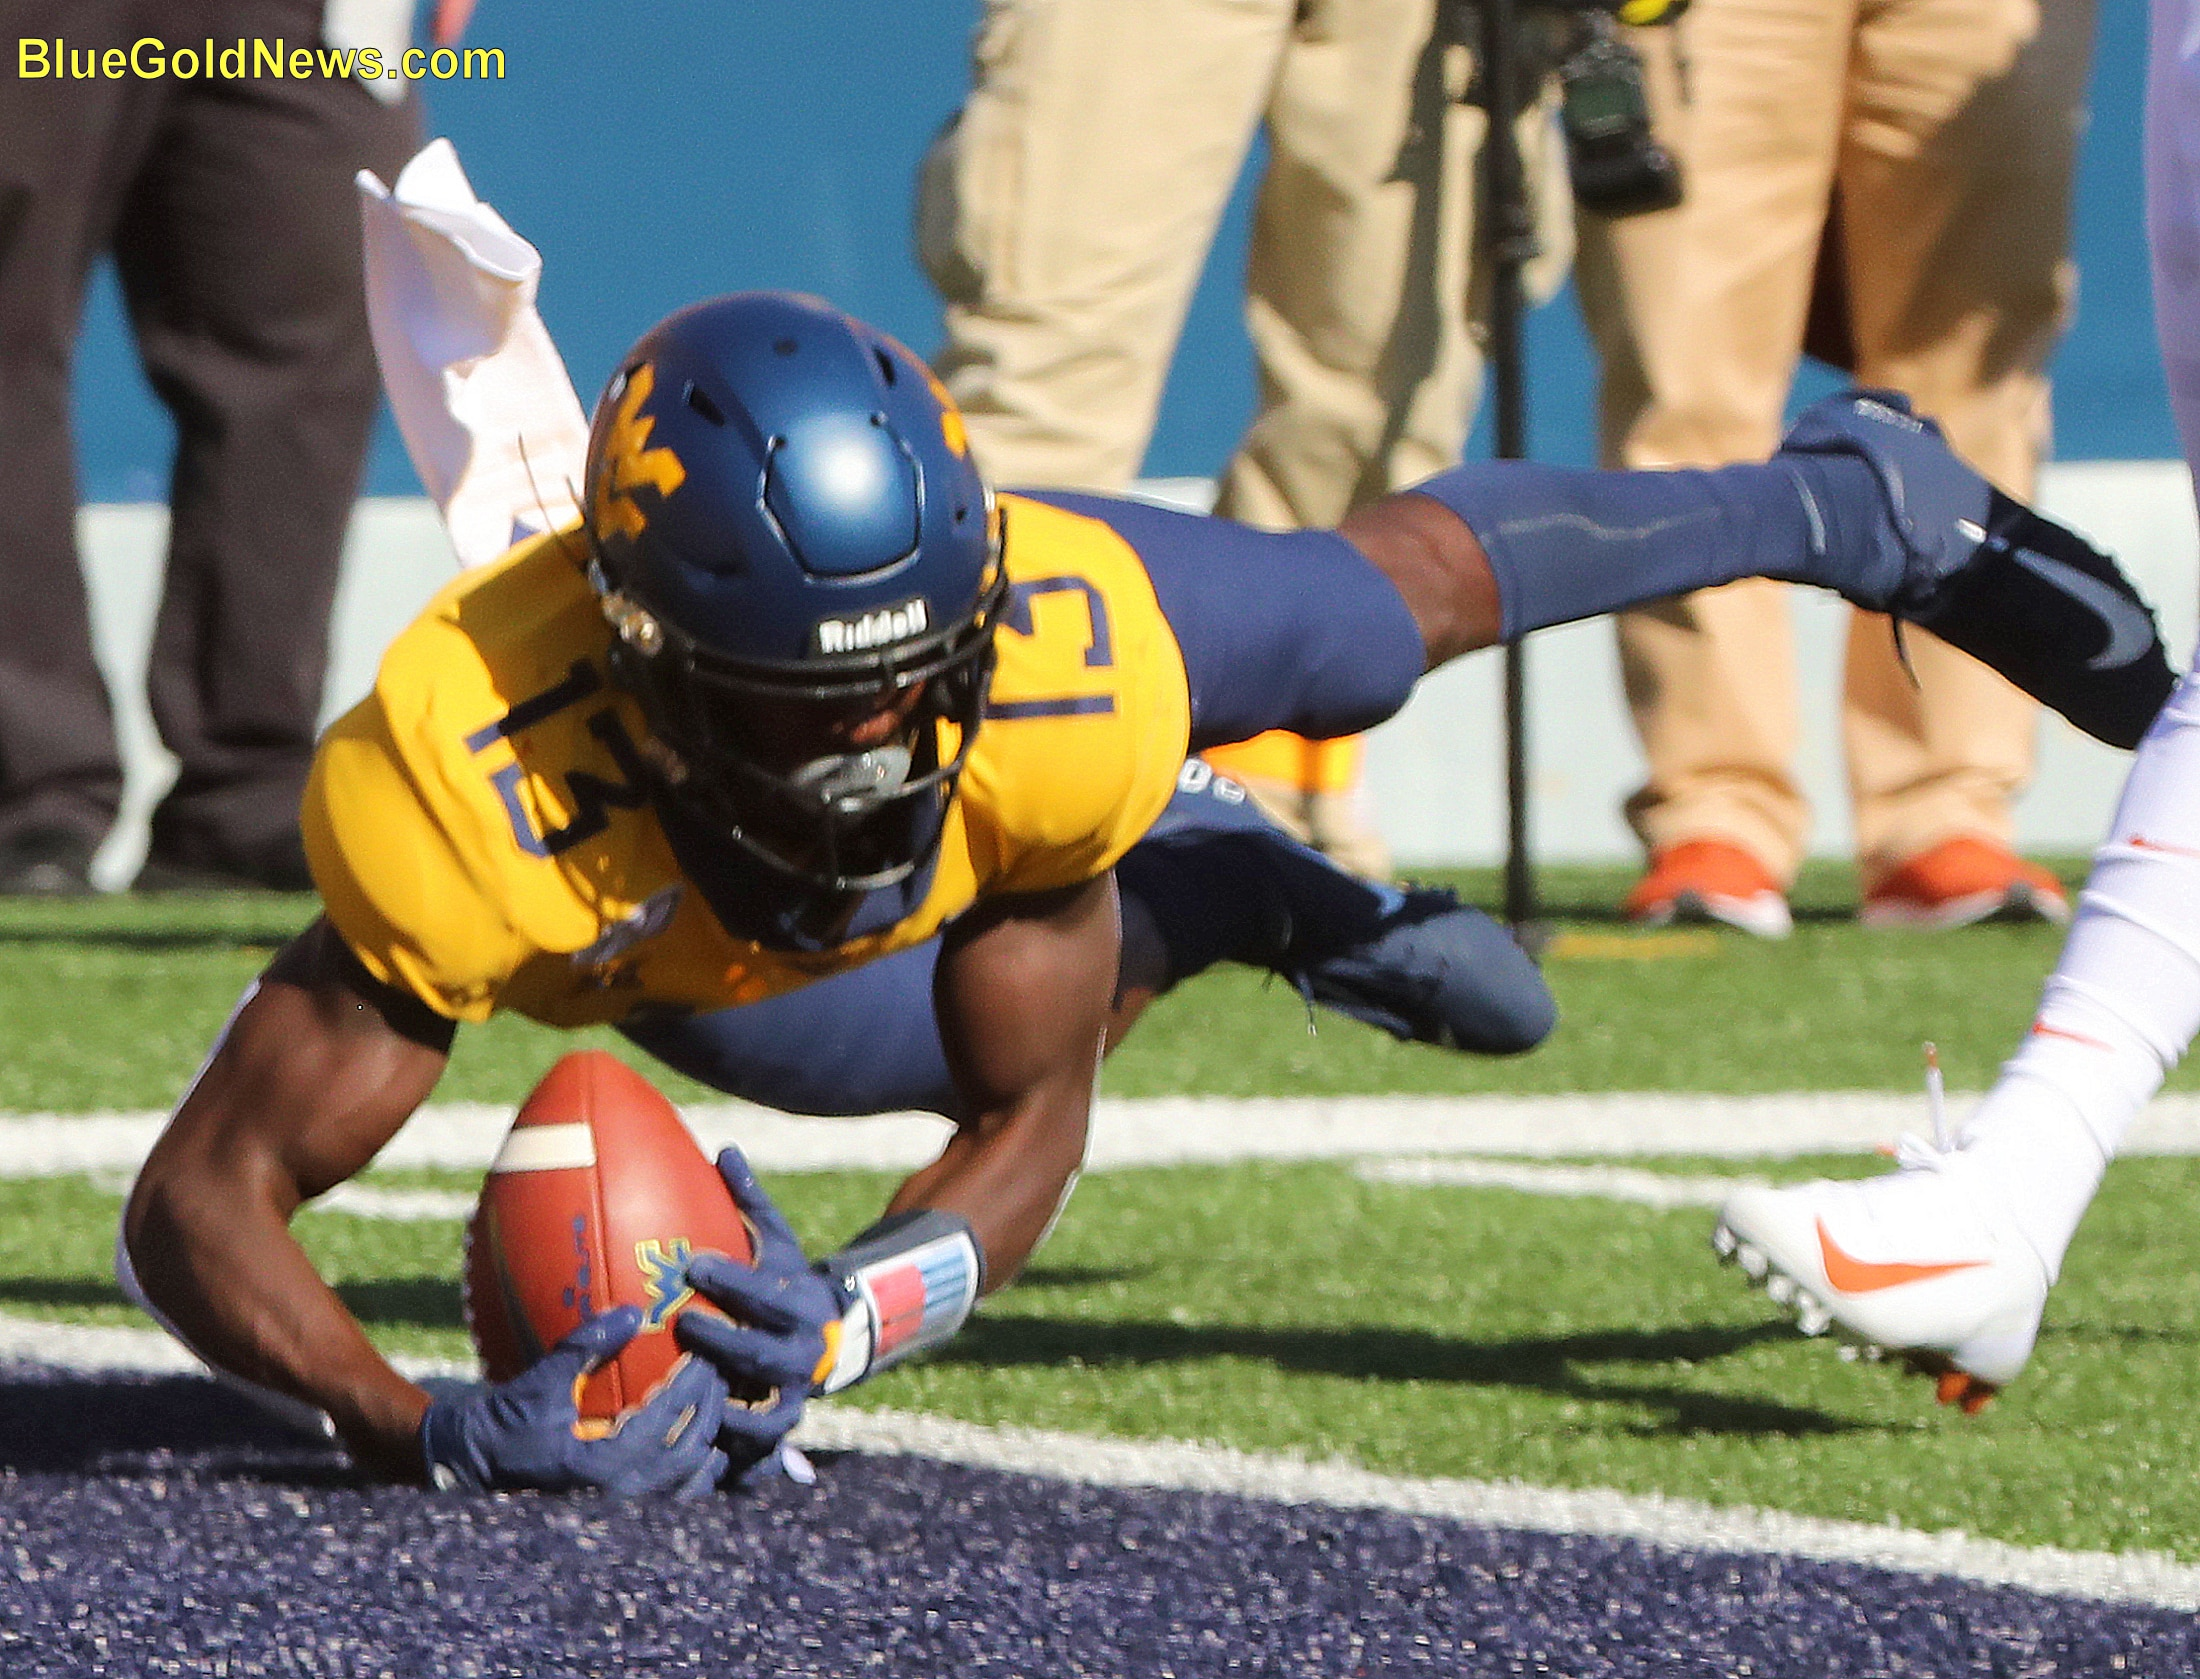 West Virginia wide receiver Sam James cradles the ball on a touchdown reception